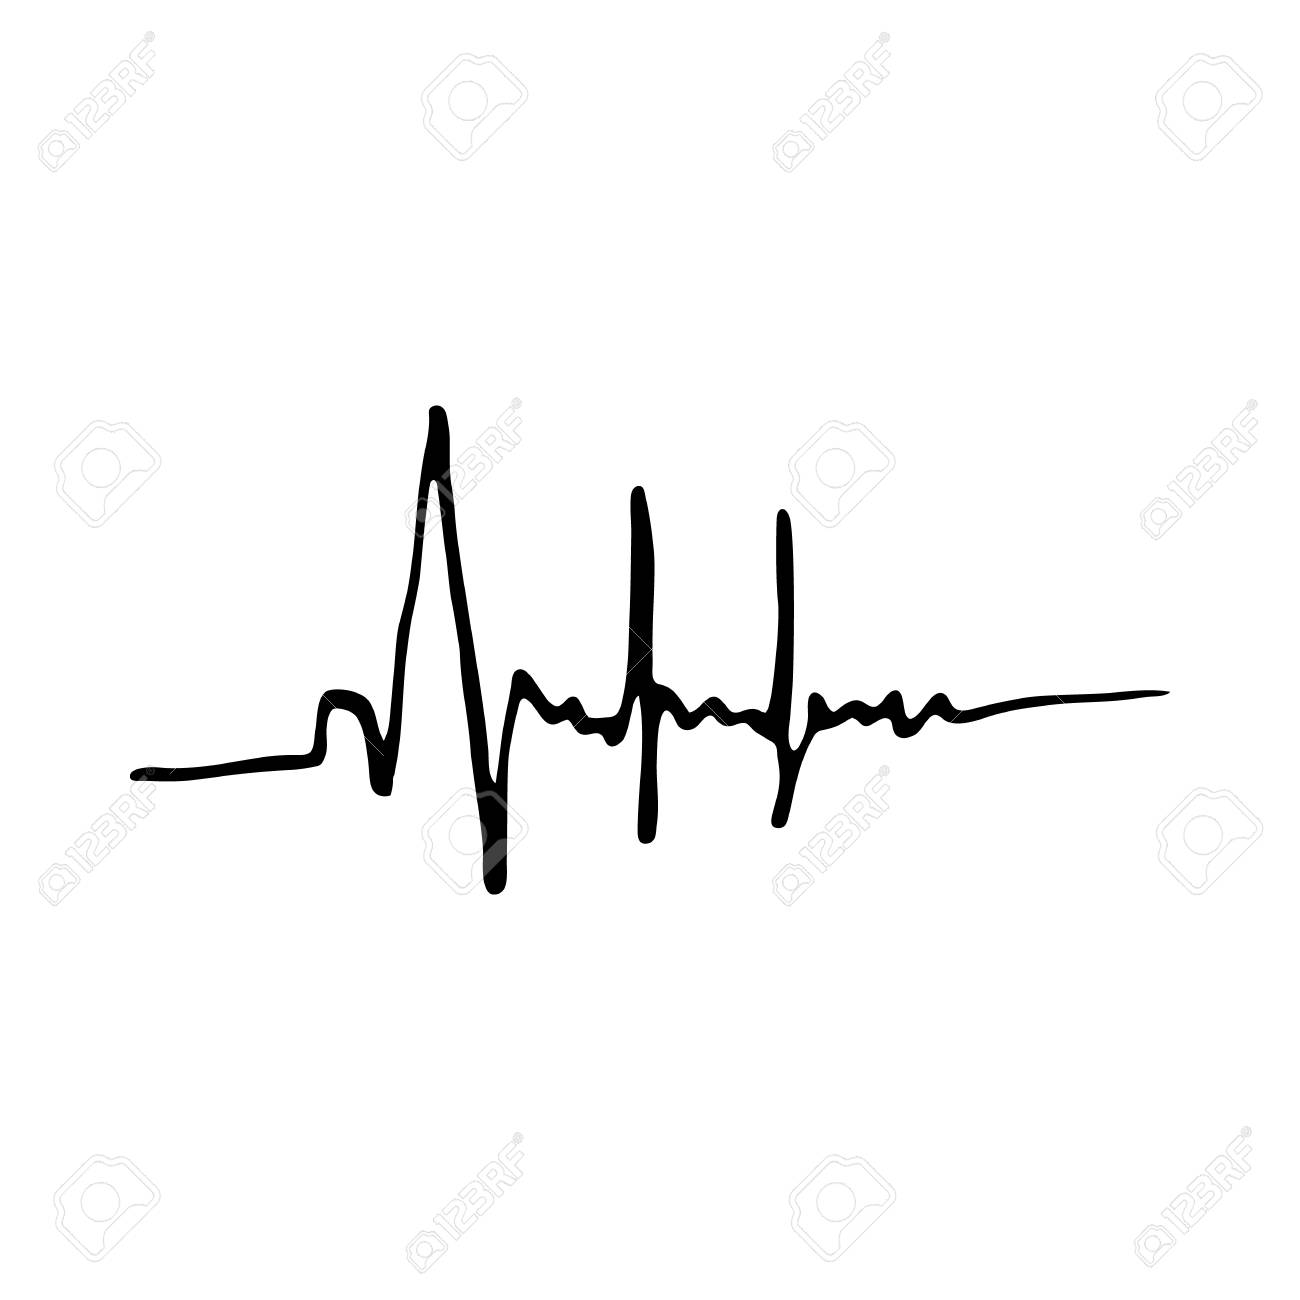 Heartbeat Icon Isolated On White Background In Style Hand Draw Royalty Free Cliparts Vectors And Stock Illustration Image 62058784